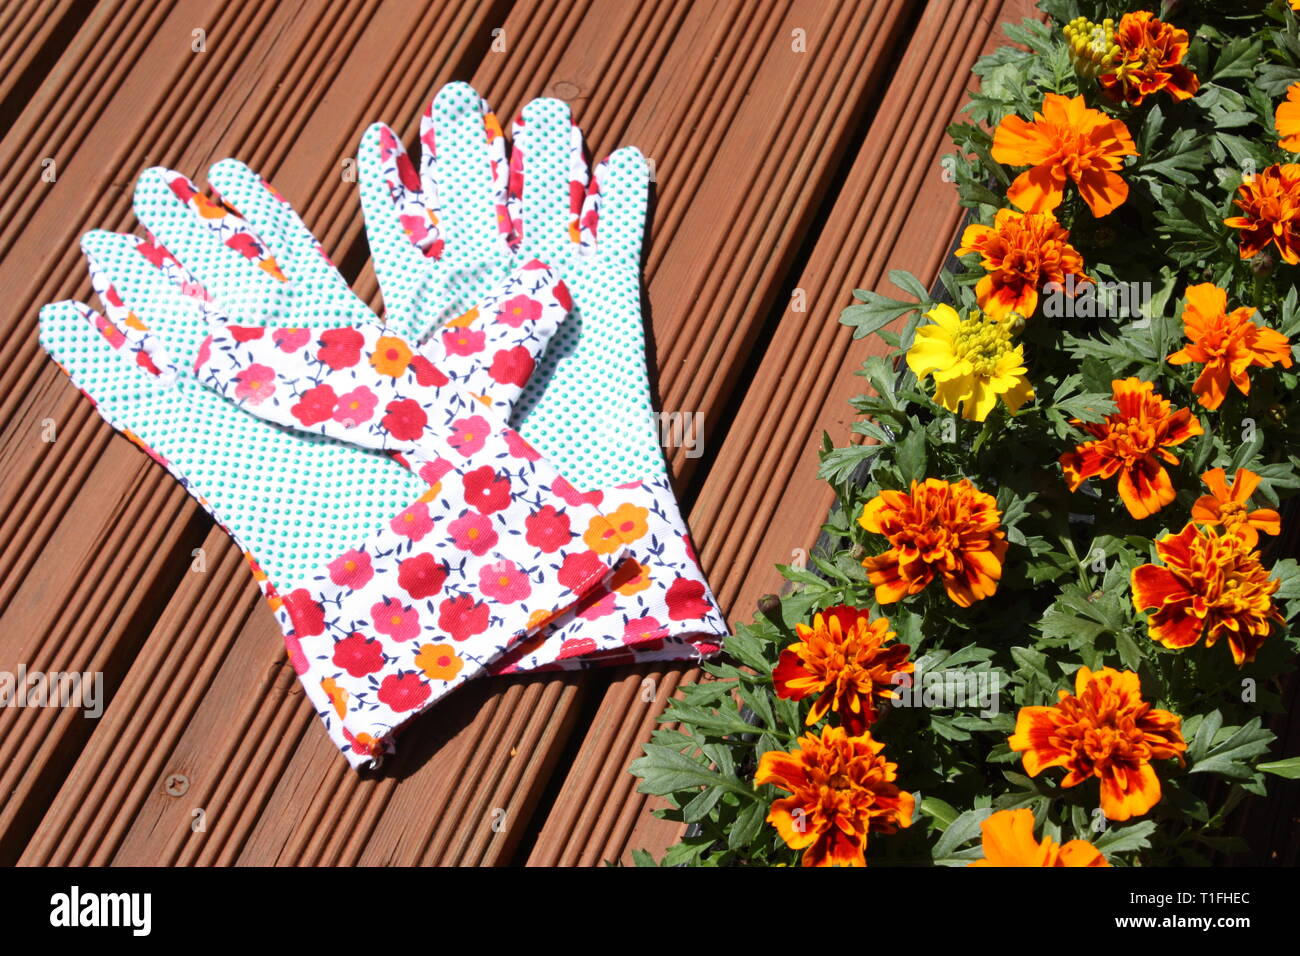 Marigold flowers with hand gloves Stock Photo